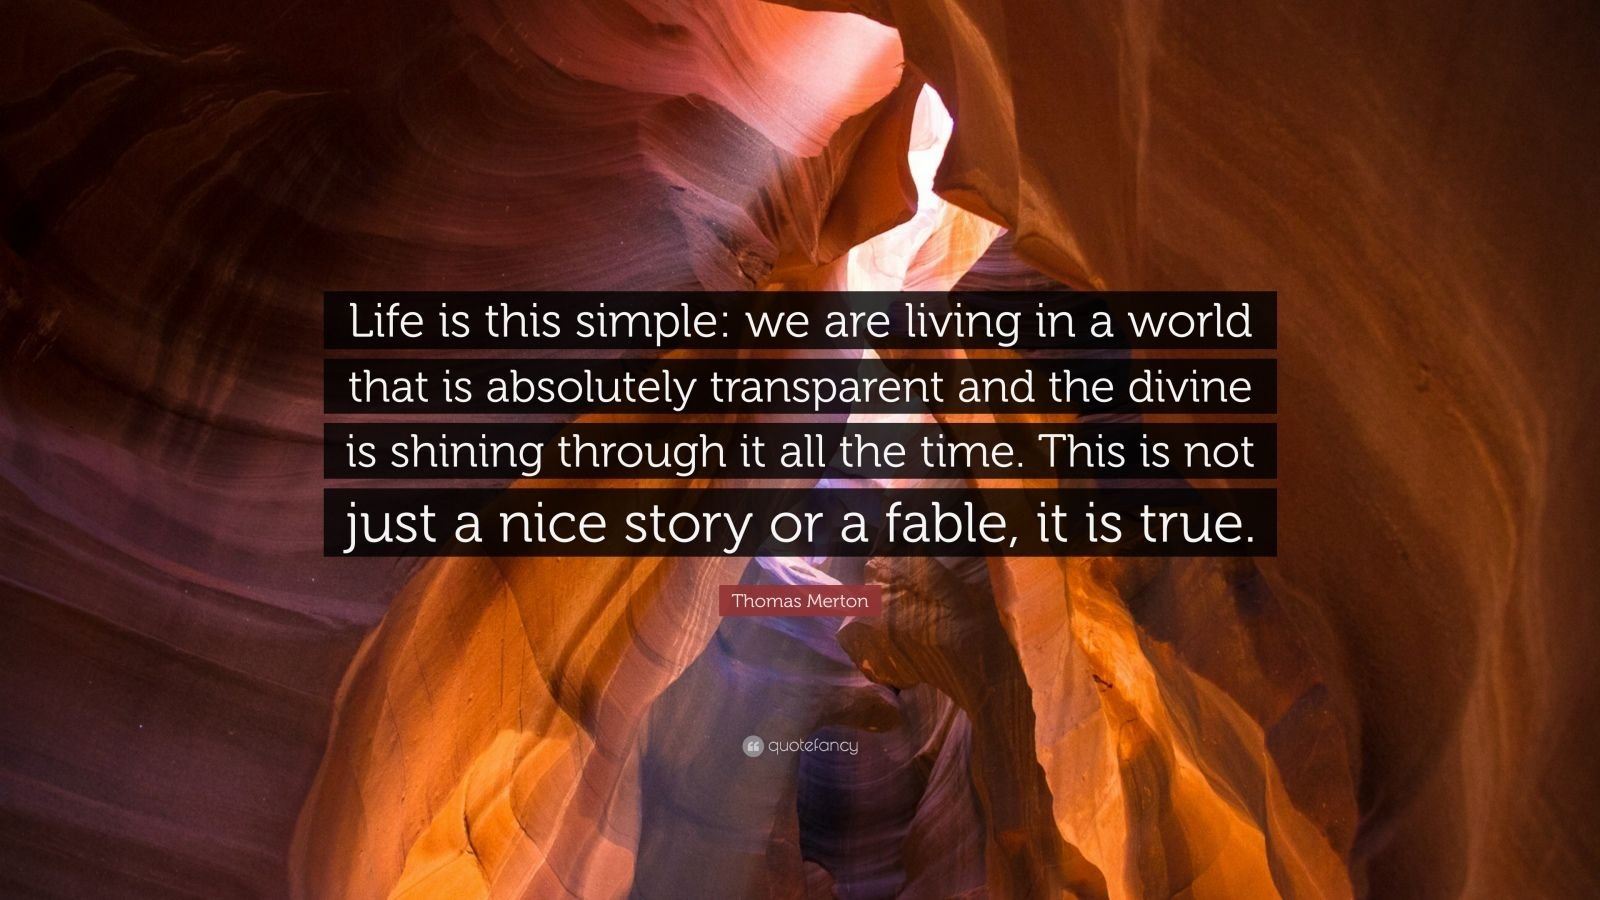 """Thomas Merton Quote: """"Life is this simple: we are living in a world that is absolutely transparent and the divine is shining through it all the time. This is not just a nice story or a fable, it is true."""""""